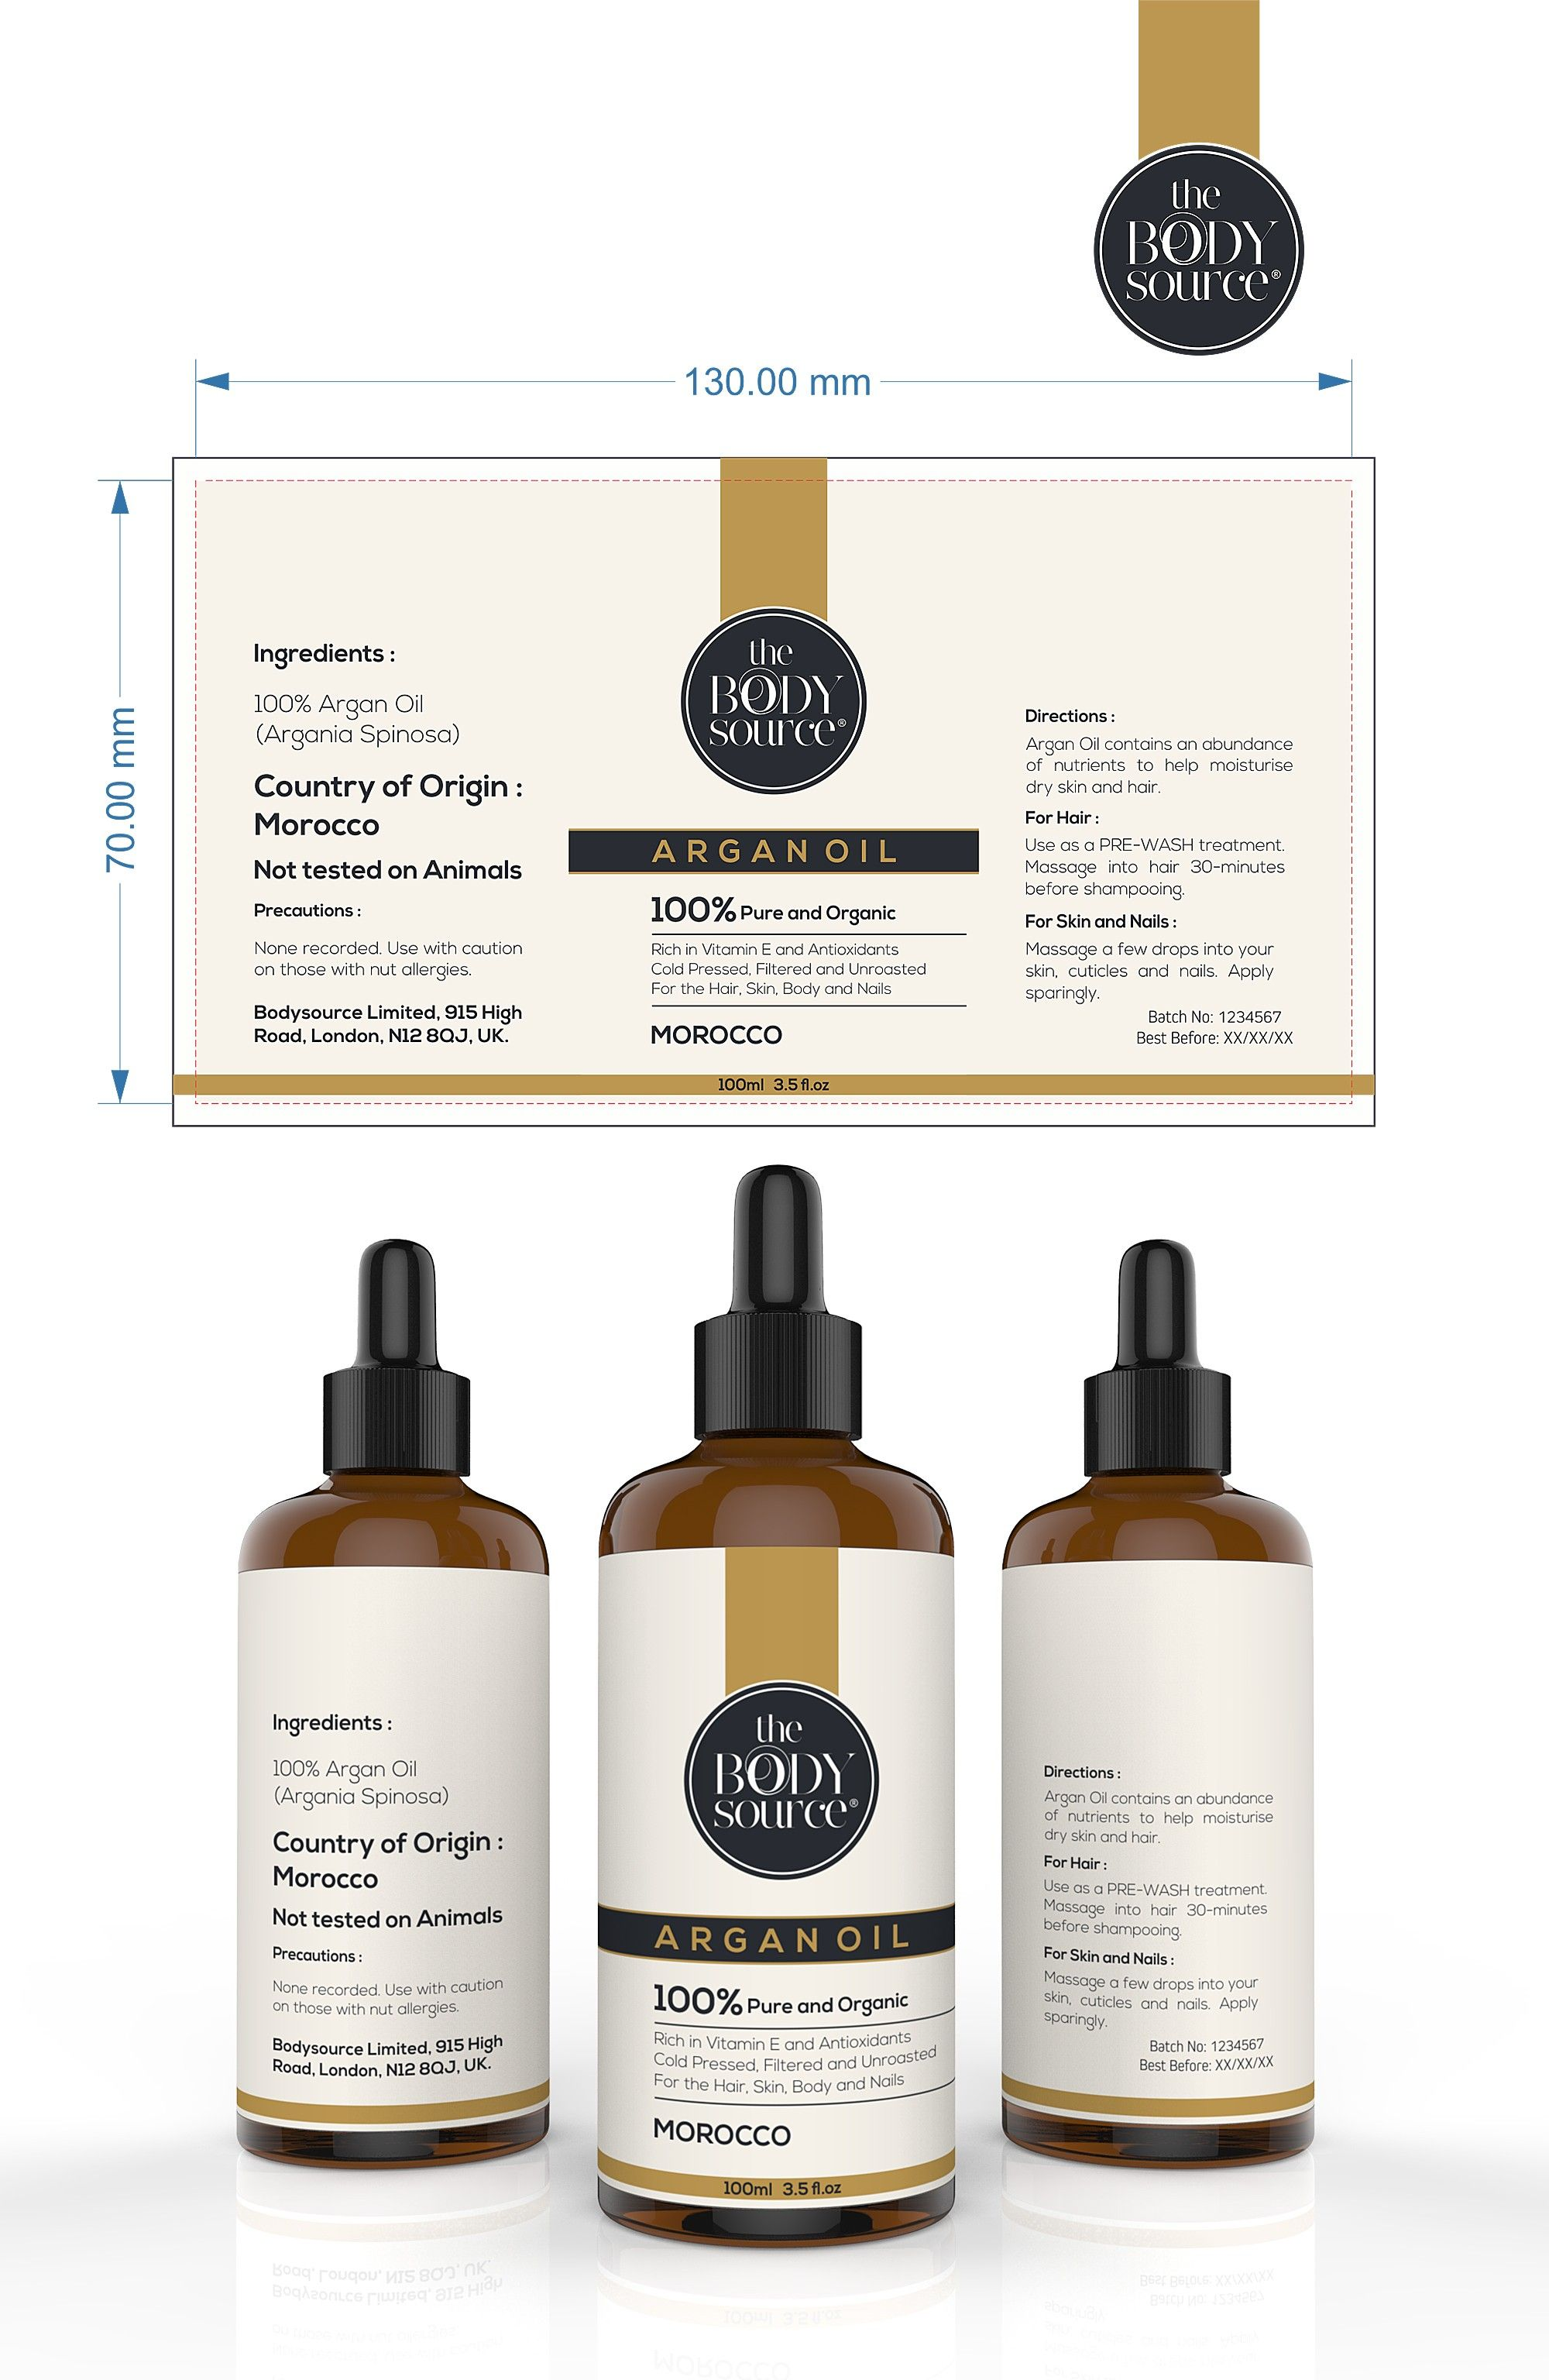 Clean And Minimal Label For A Luxurious Cosmetics Bottle 99designs Cosmetic Labels Design Cosmetic Packaging Design Shampoo Bottles Design